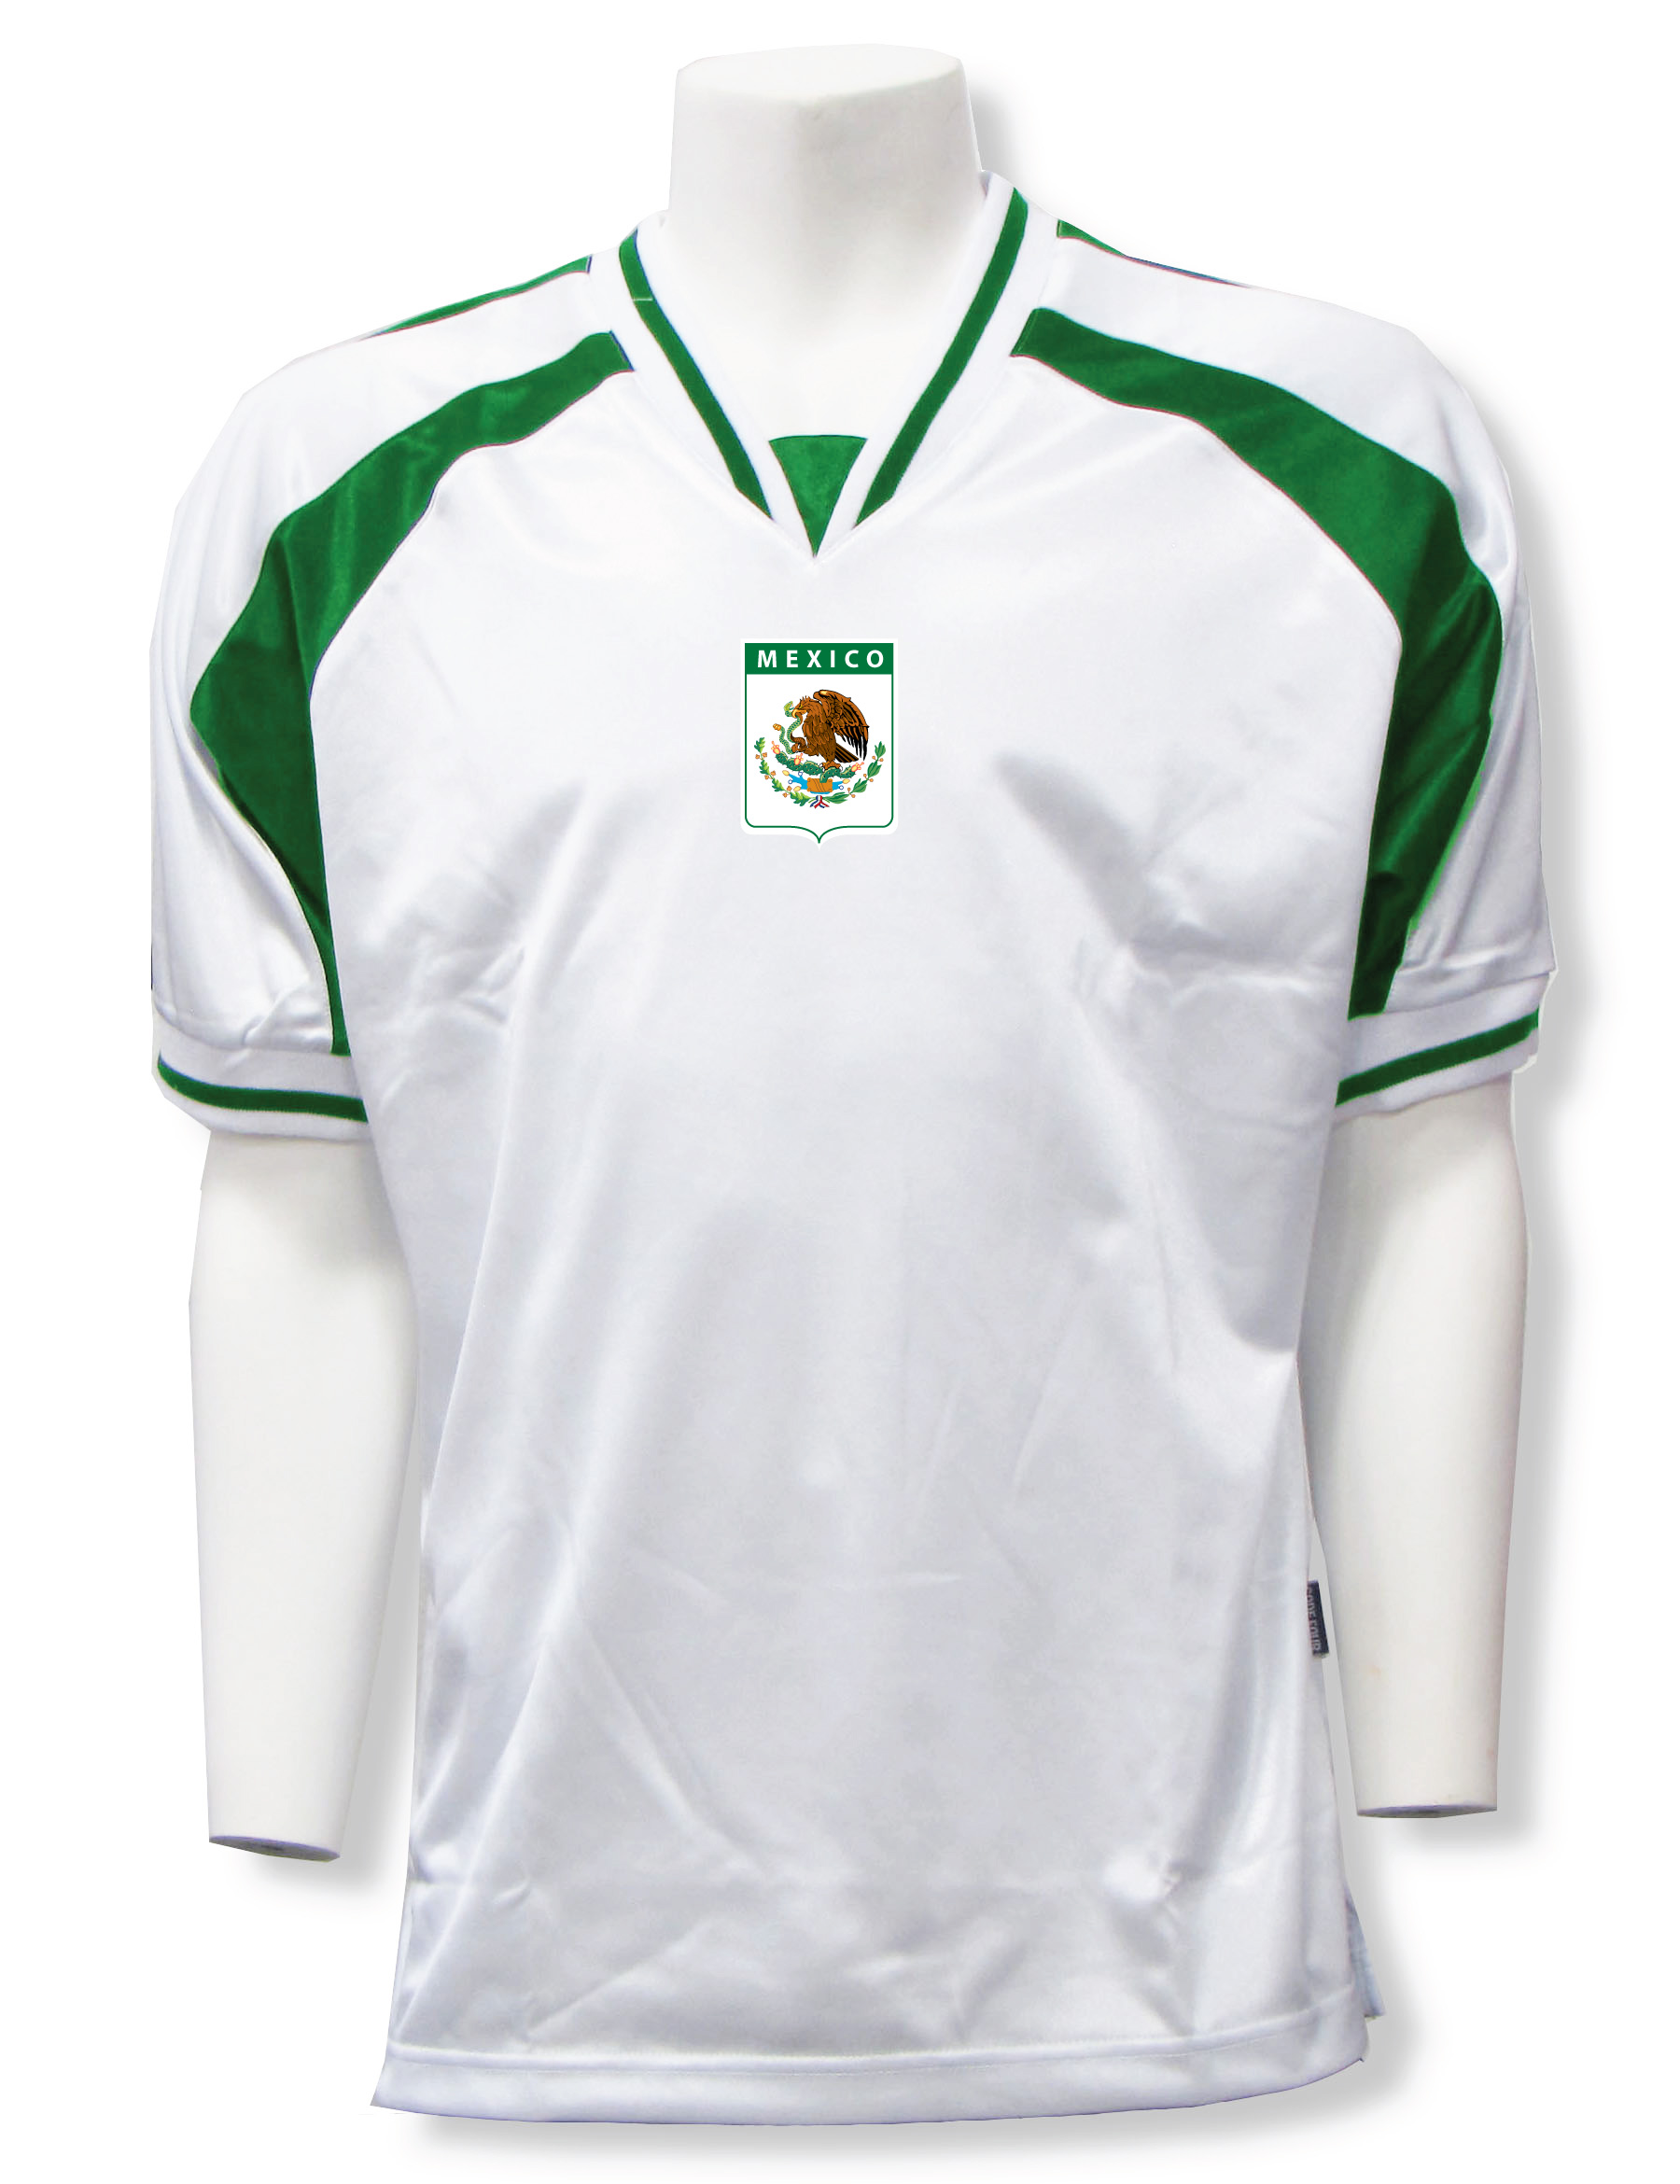 Mexico soccer jersey in white/forest Spitfire